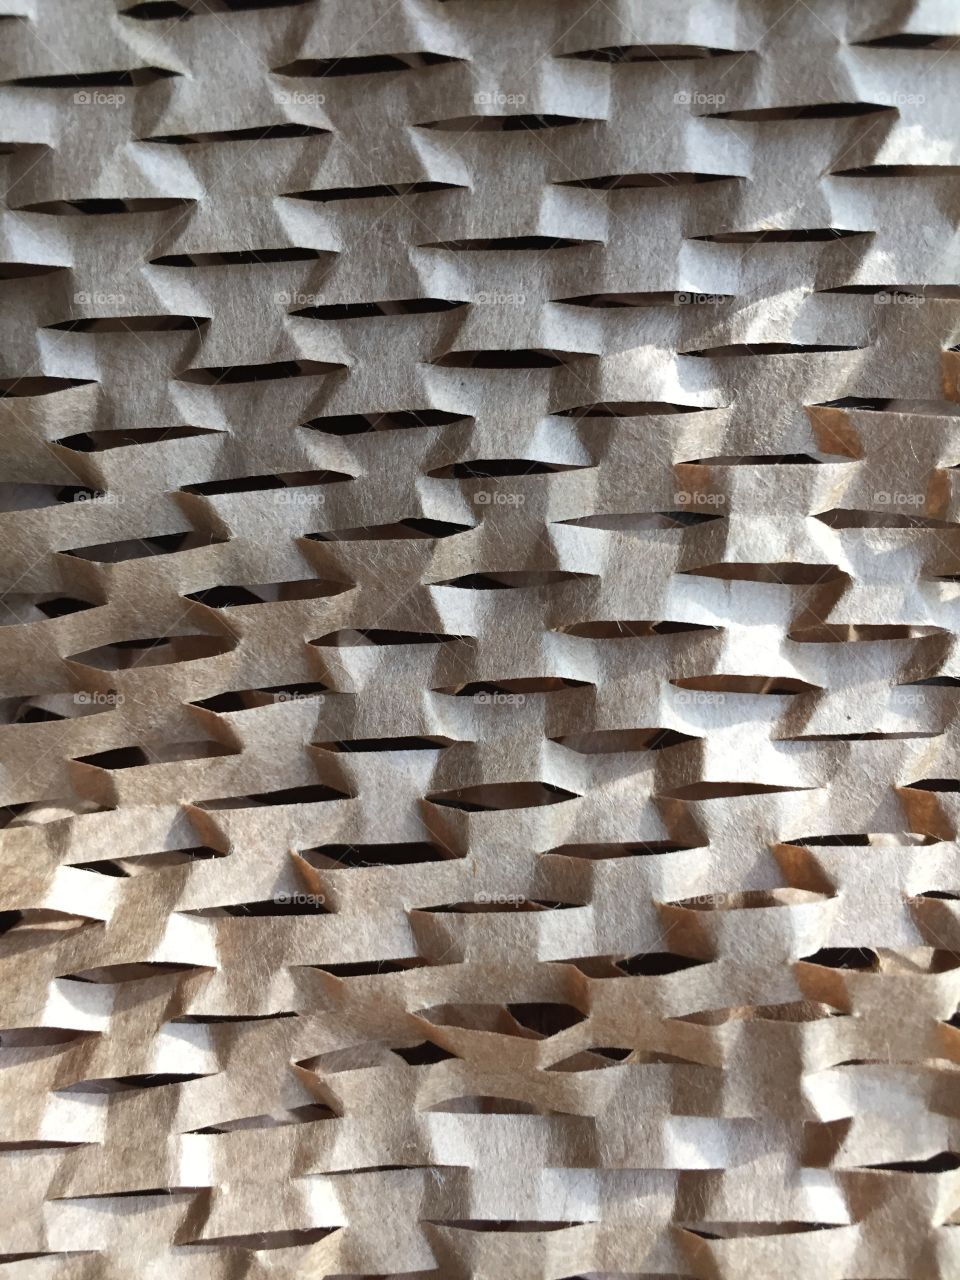 Creative Textures - paper packing material